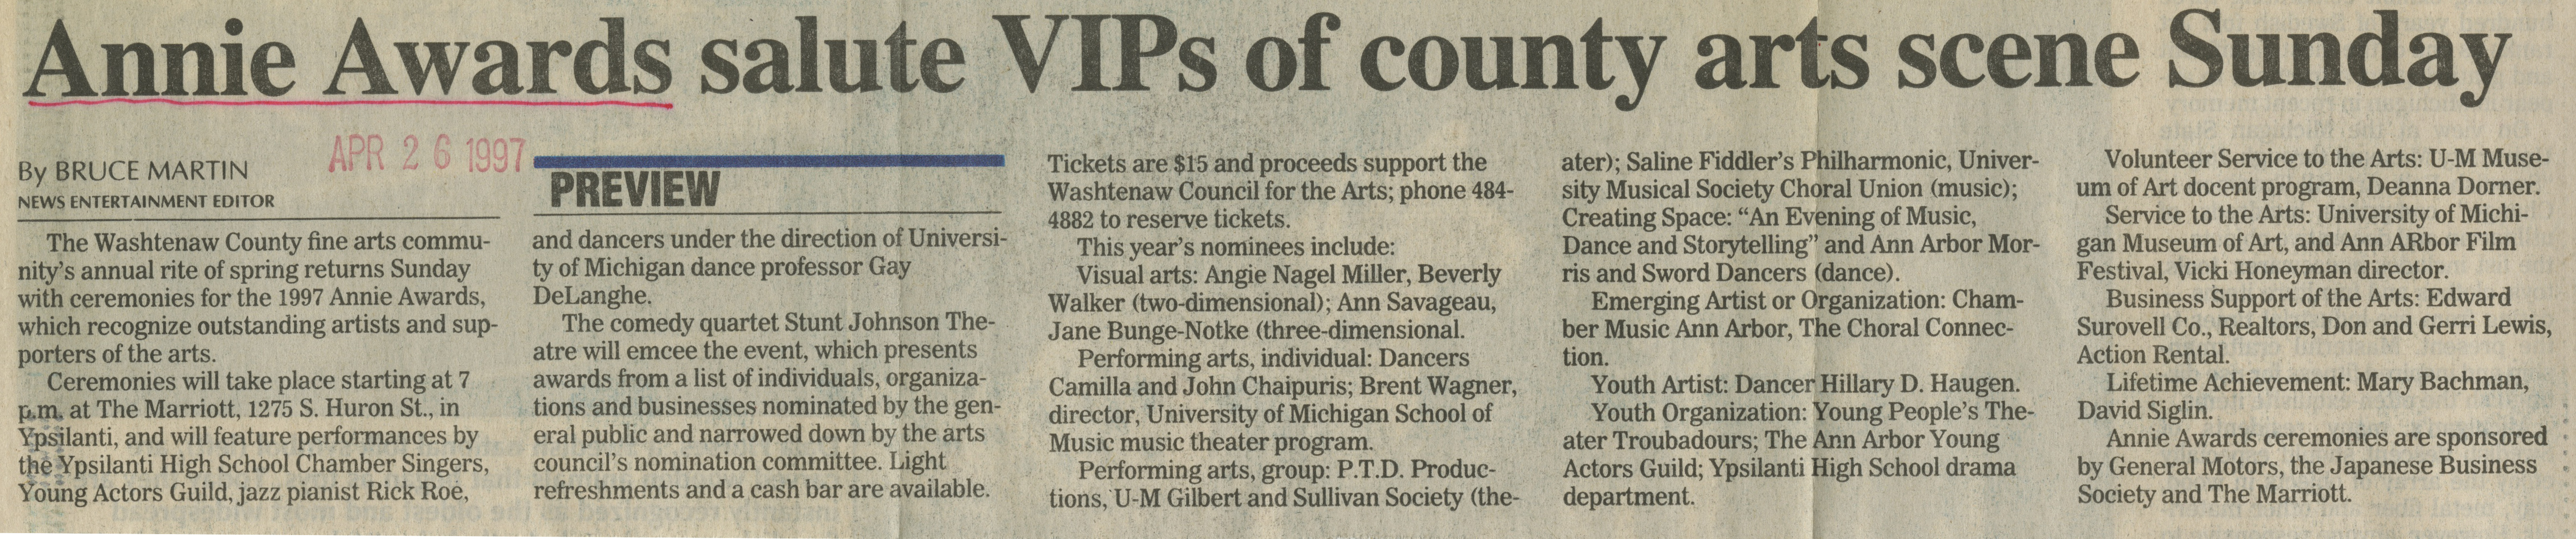 Annie Awards salute VIPs of county arts scene Sunday image